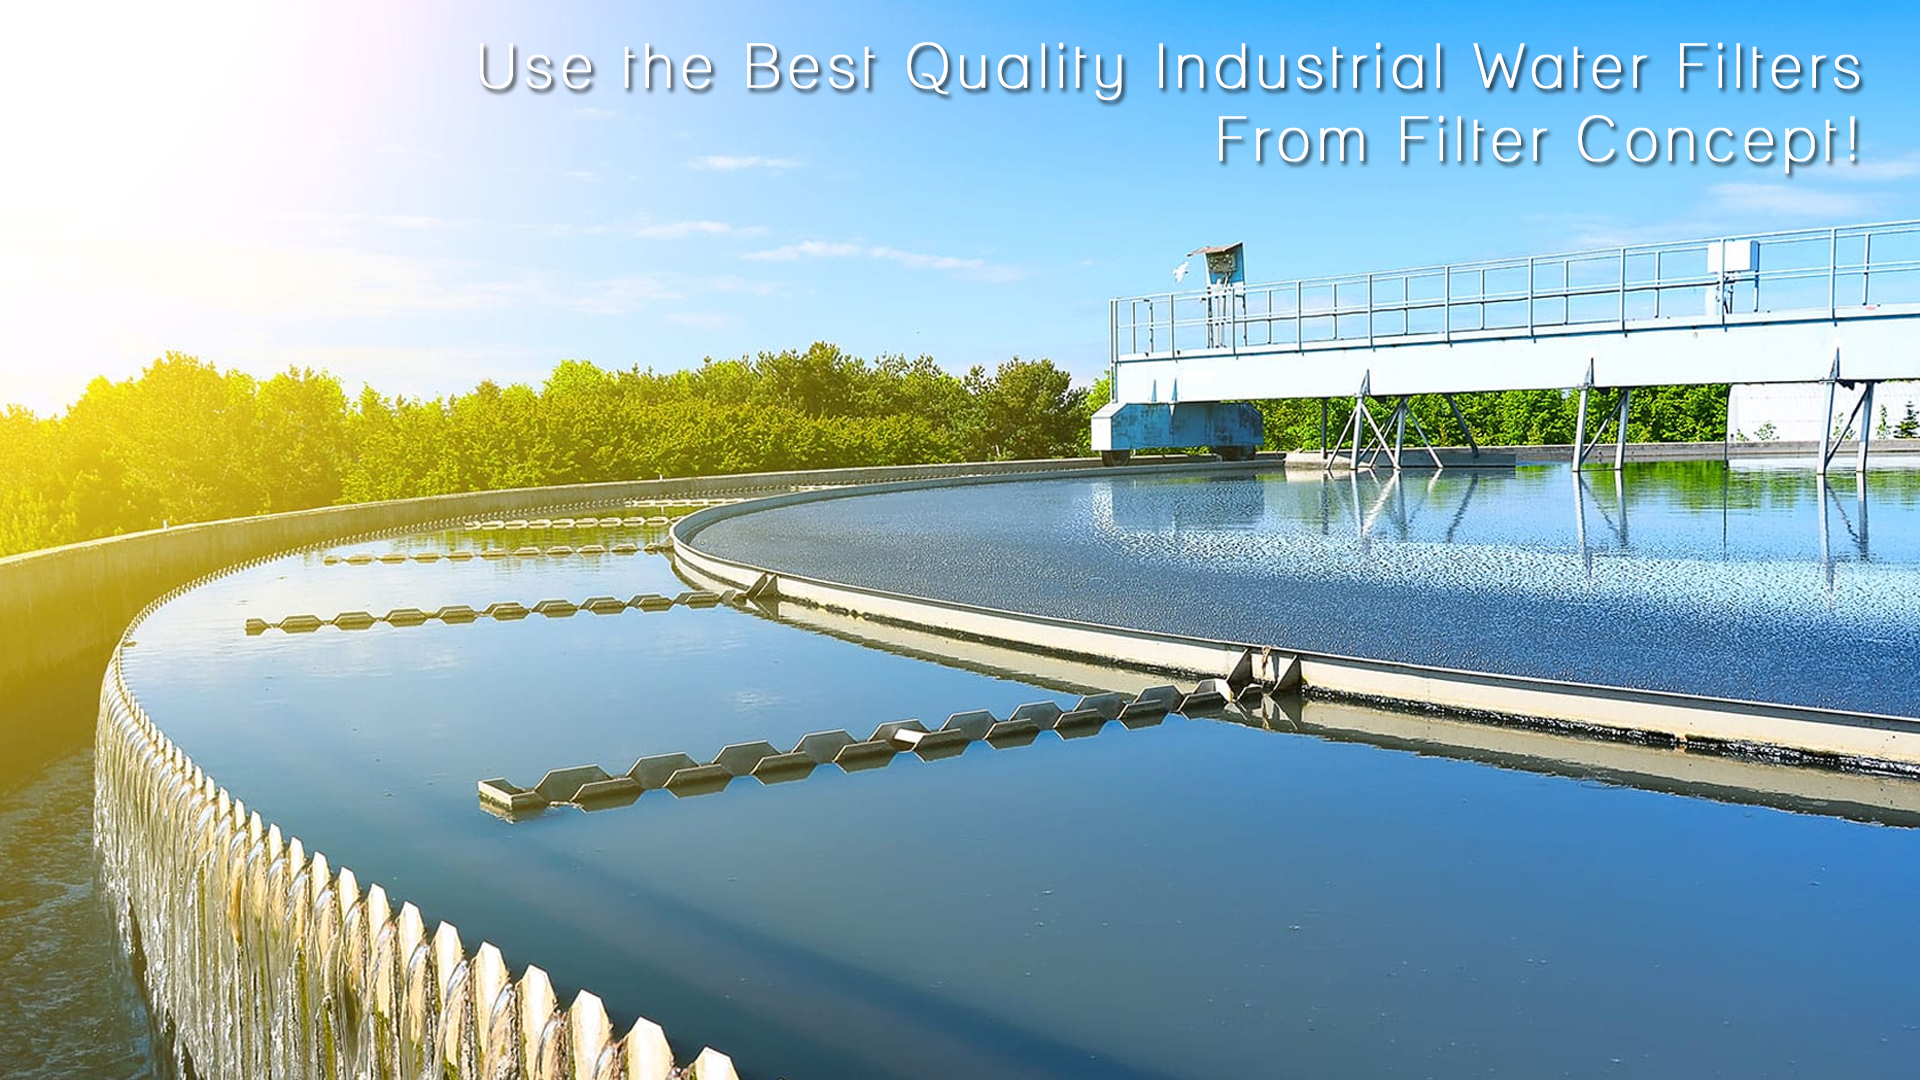 Use the Best Quality Industrial Water Filters From Filter Concept !